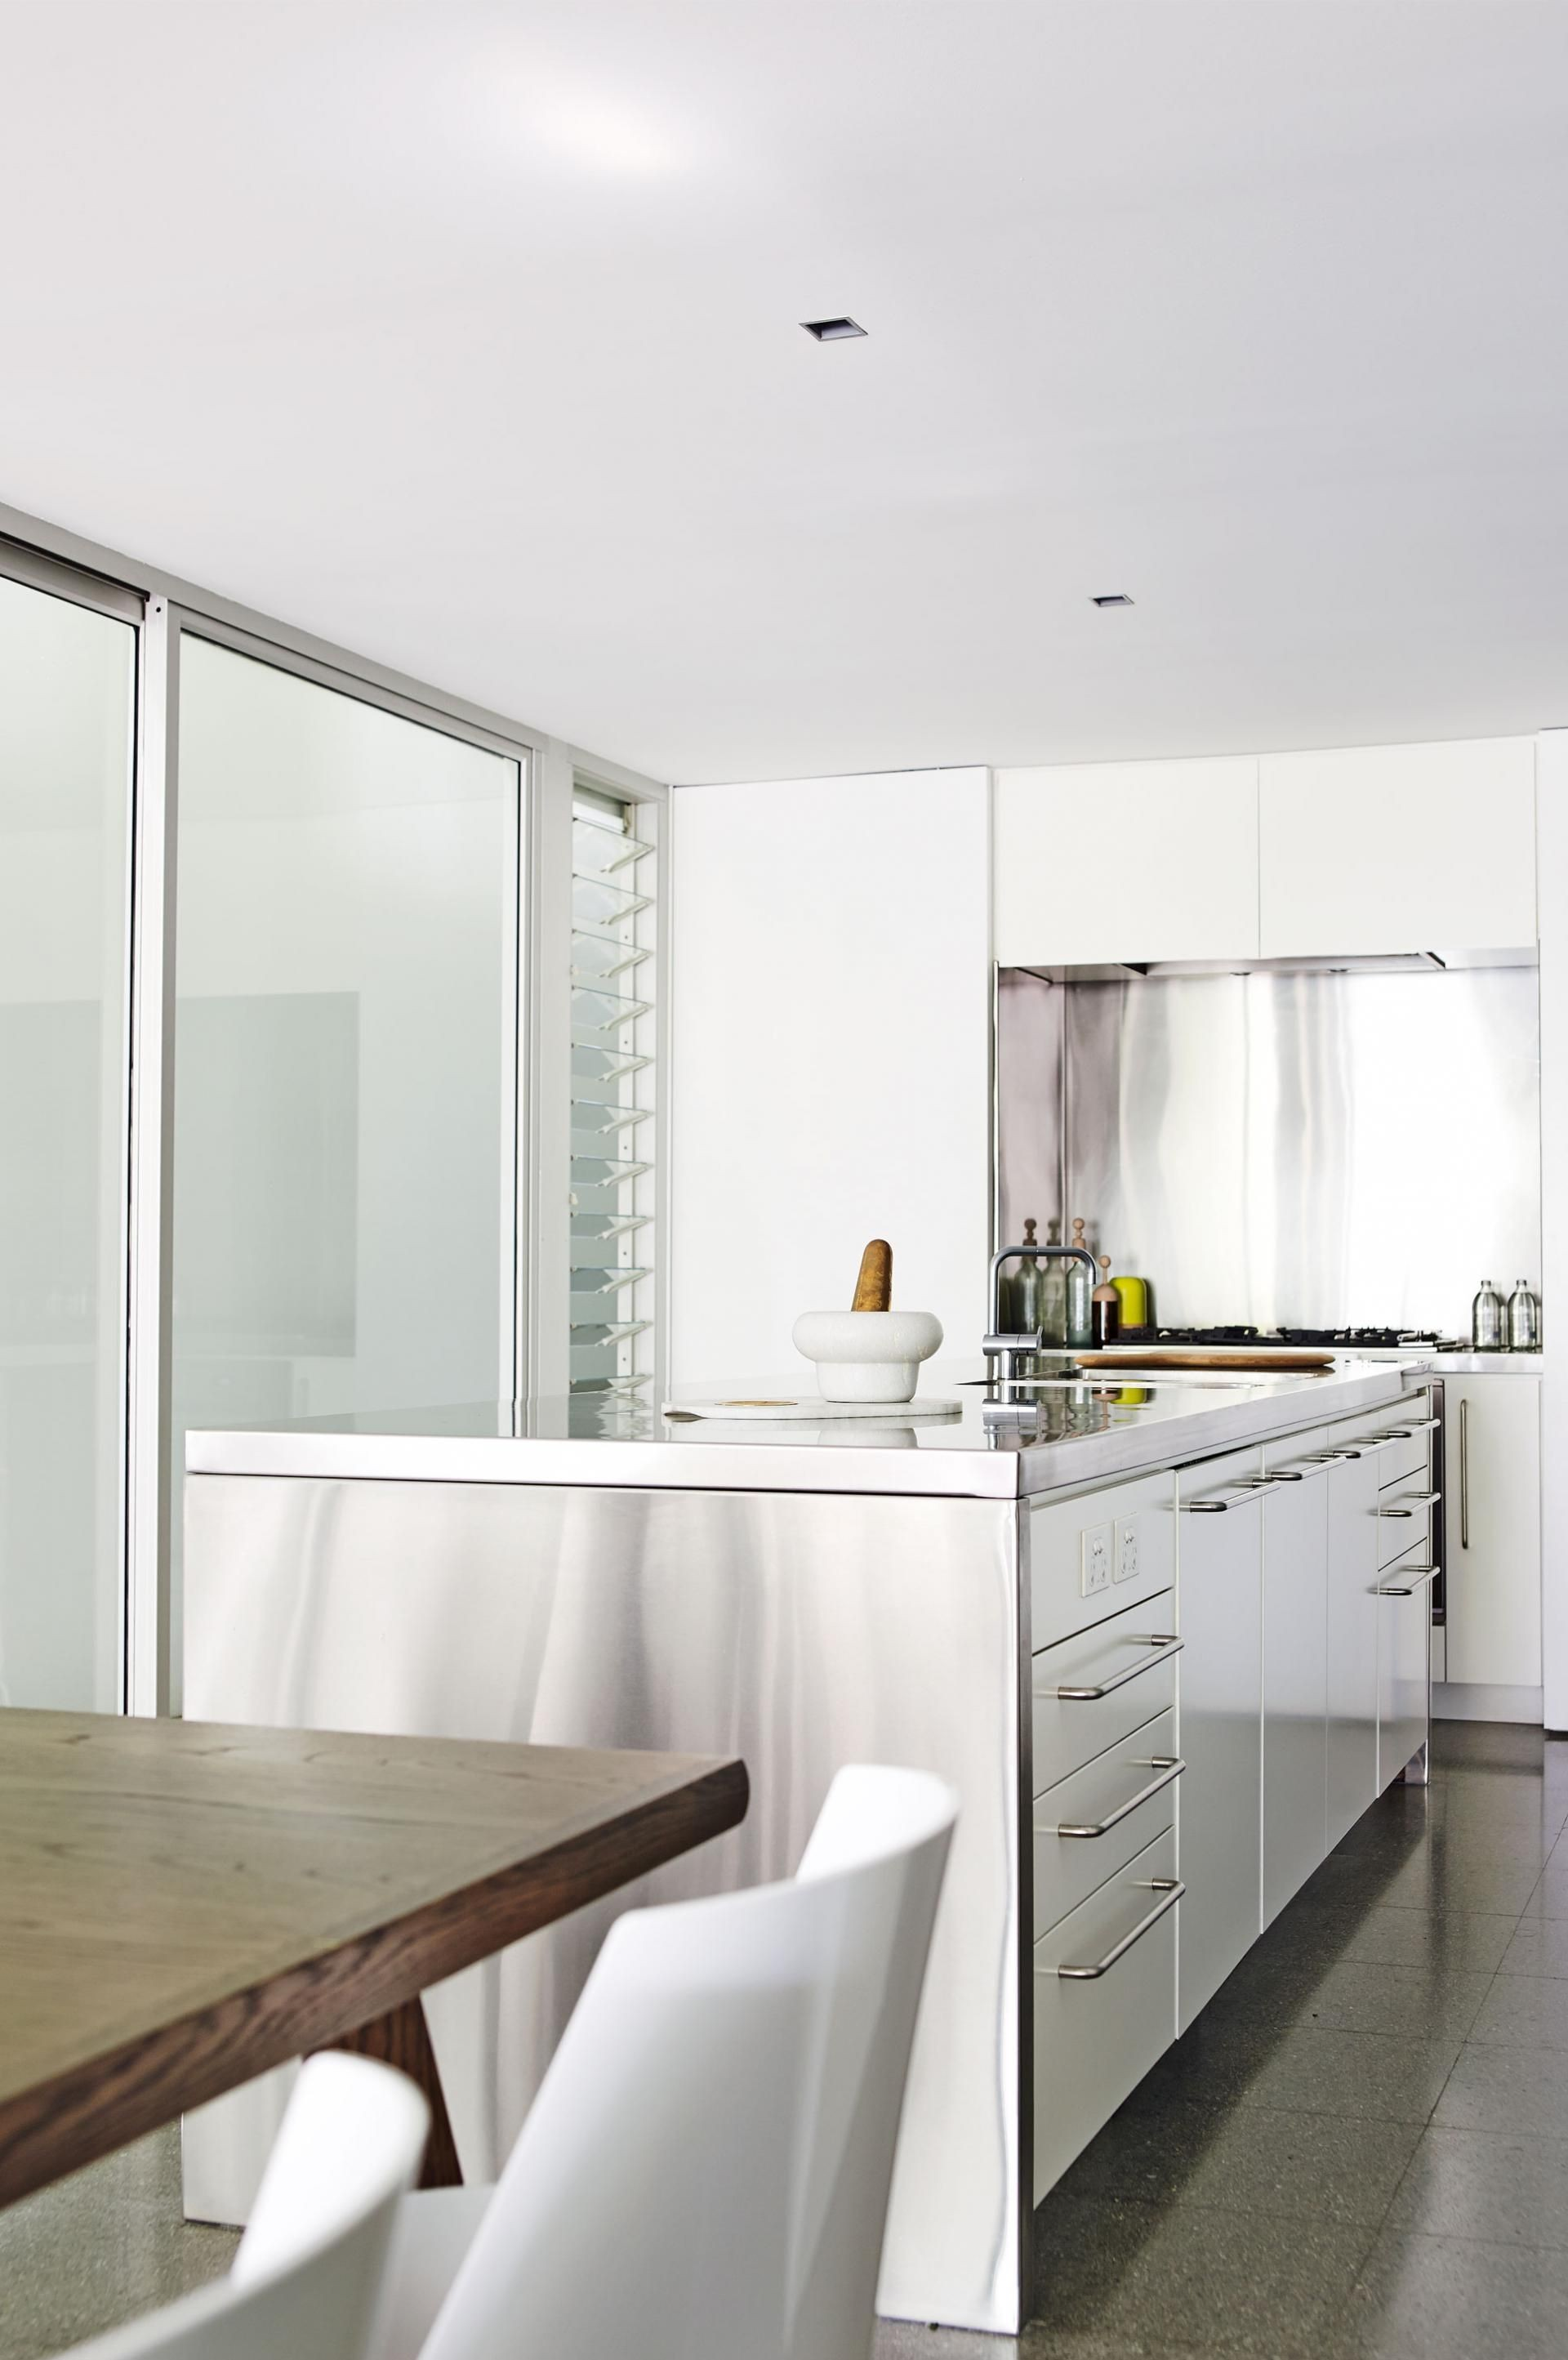 Lack of clutter on the kitchen bench Stainless steel and